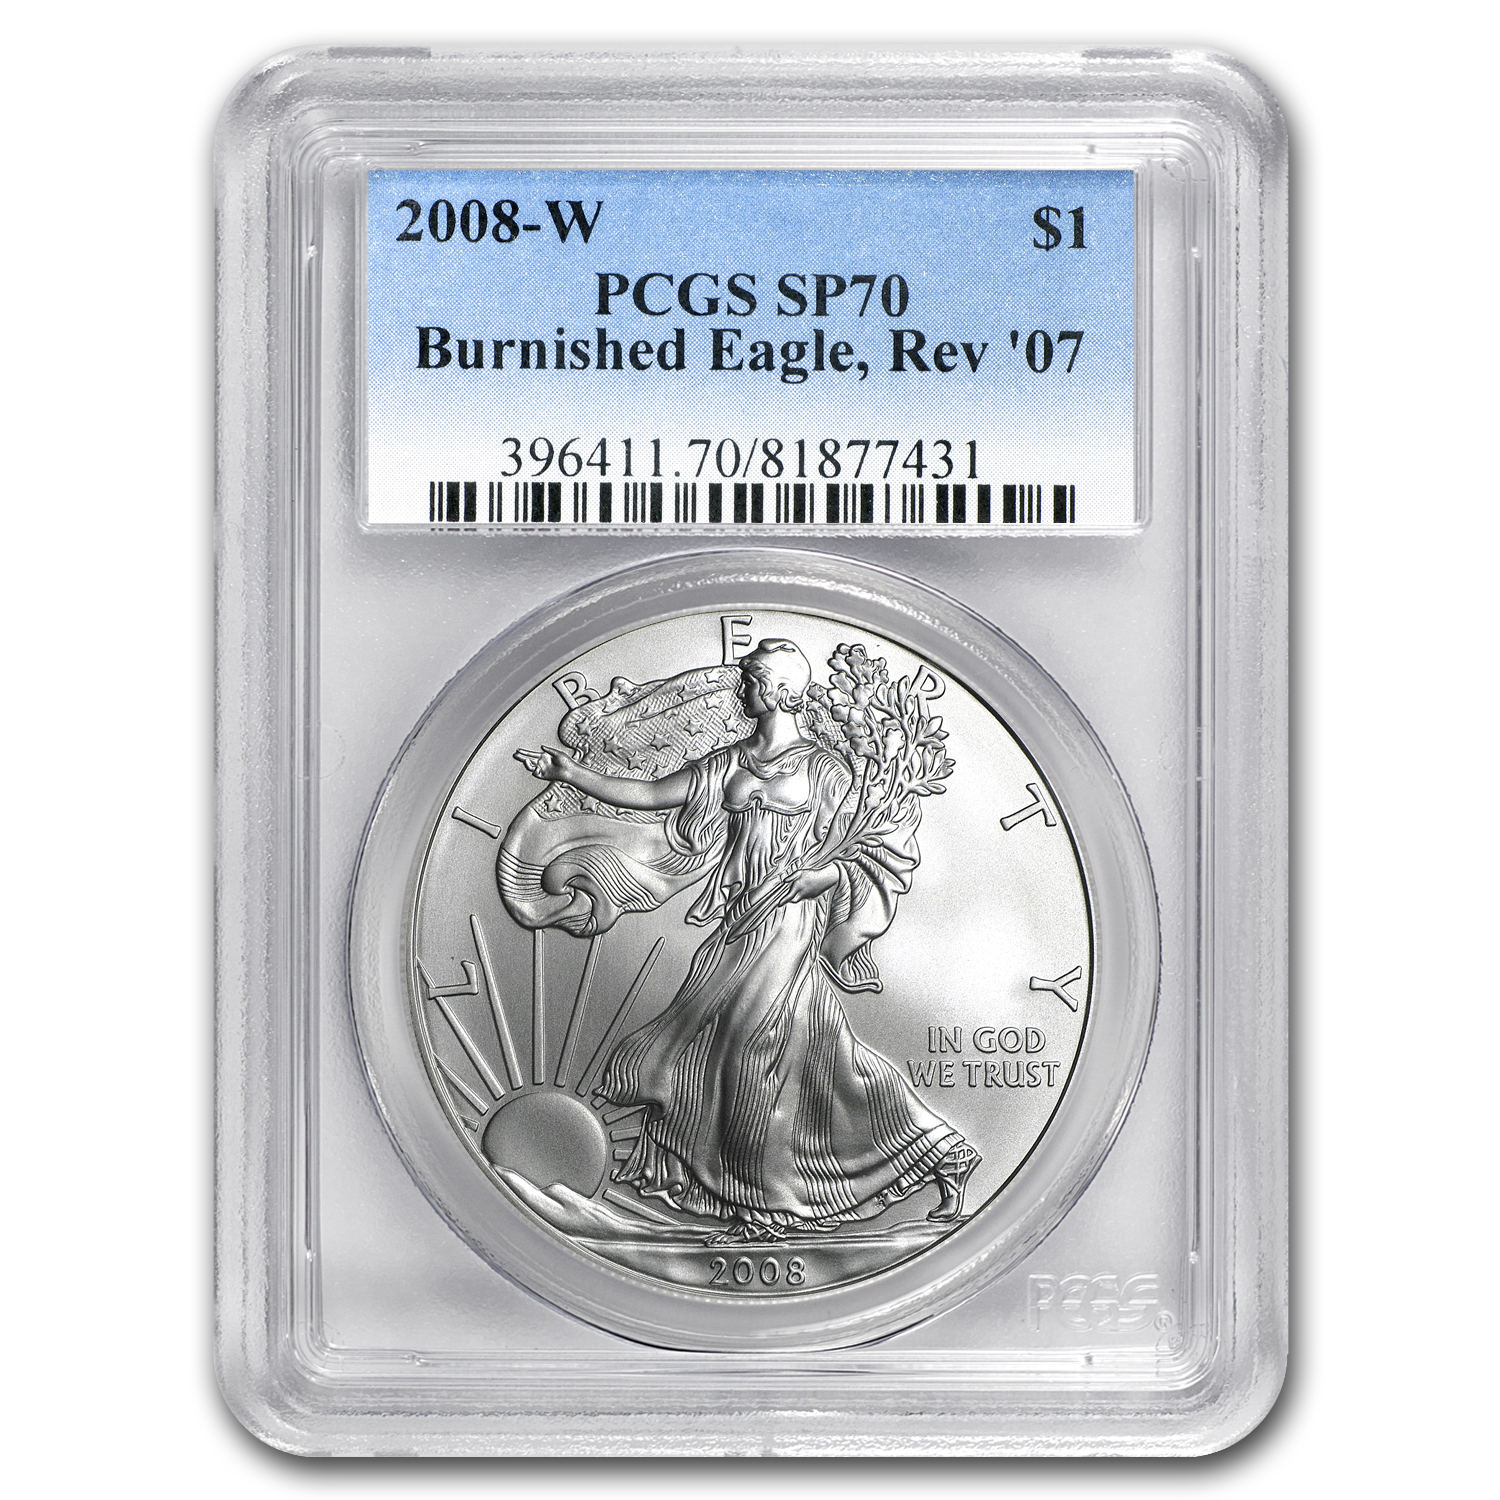 2008-W (Burnished) Silver American Eagle MS-70 PCGS (Rev '07)